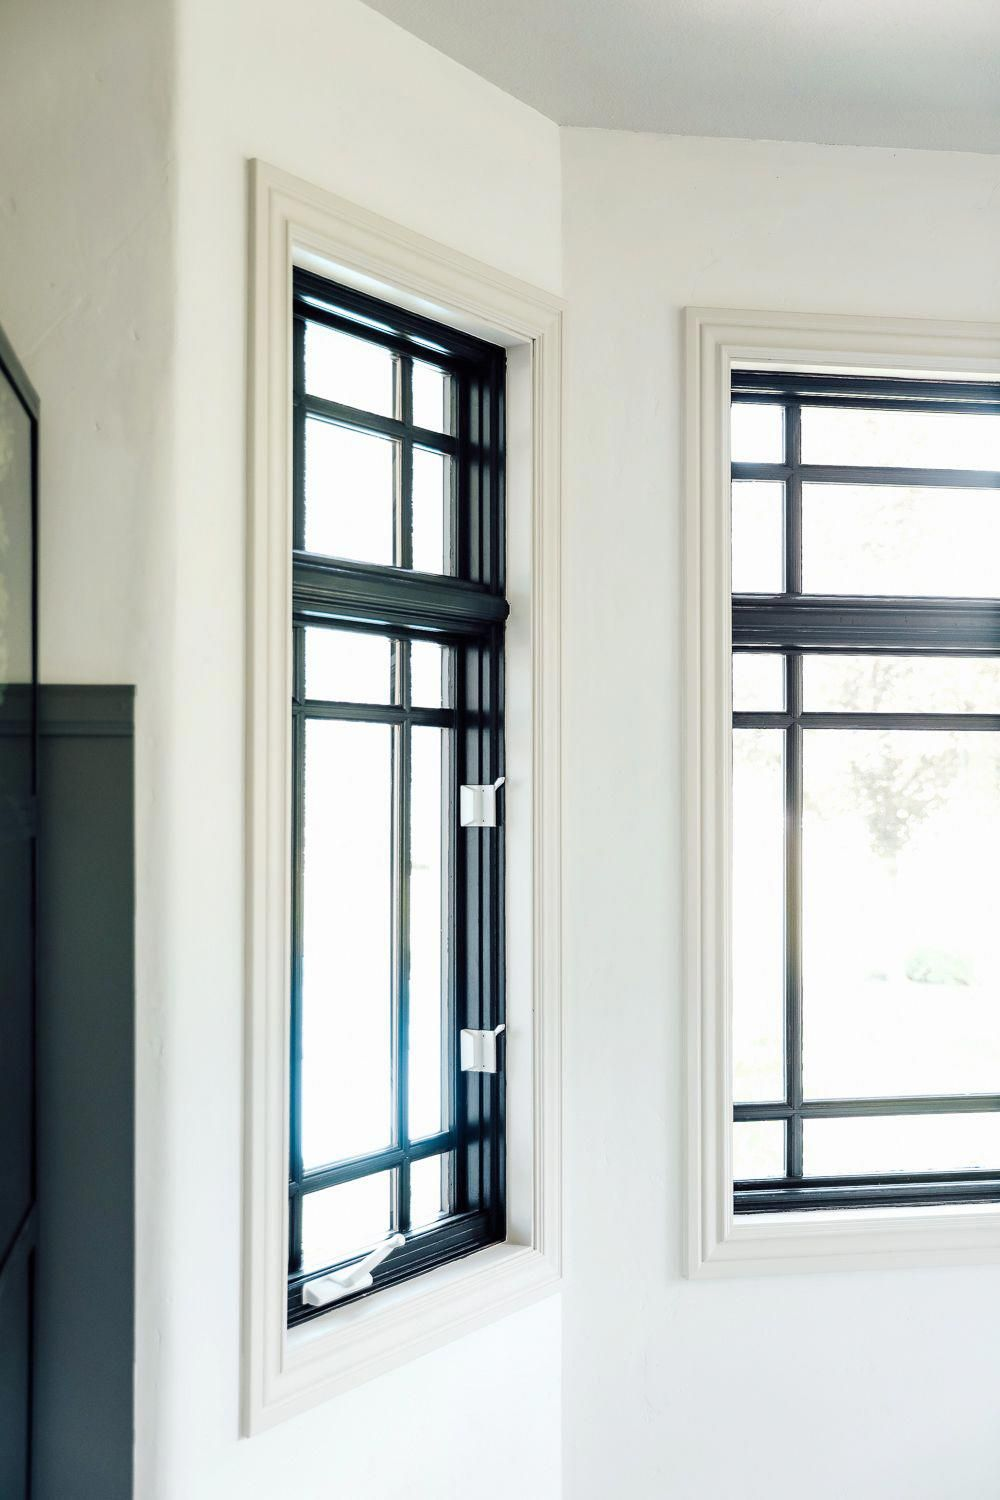 I Appreciate This Outstanding Windows Frame Windowsframe Interior Window Trim White Window Trim Black Window Trims